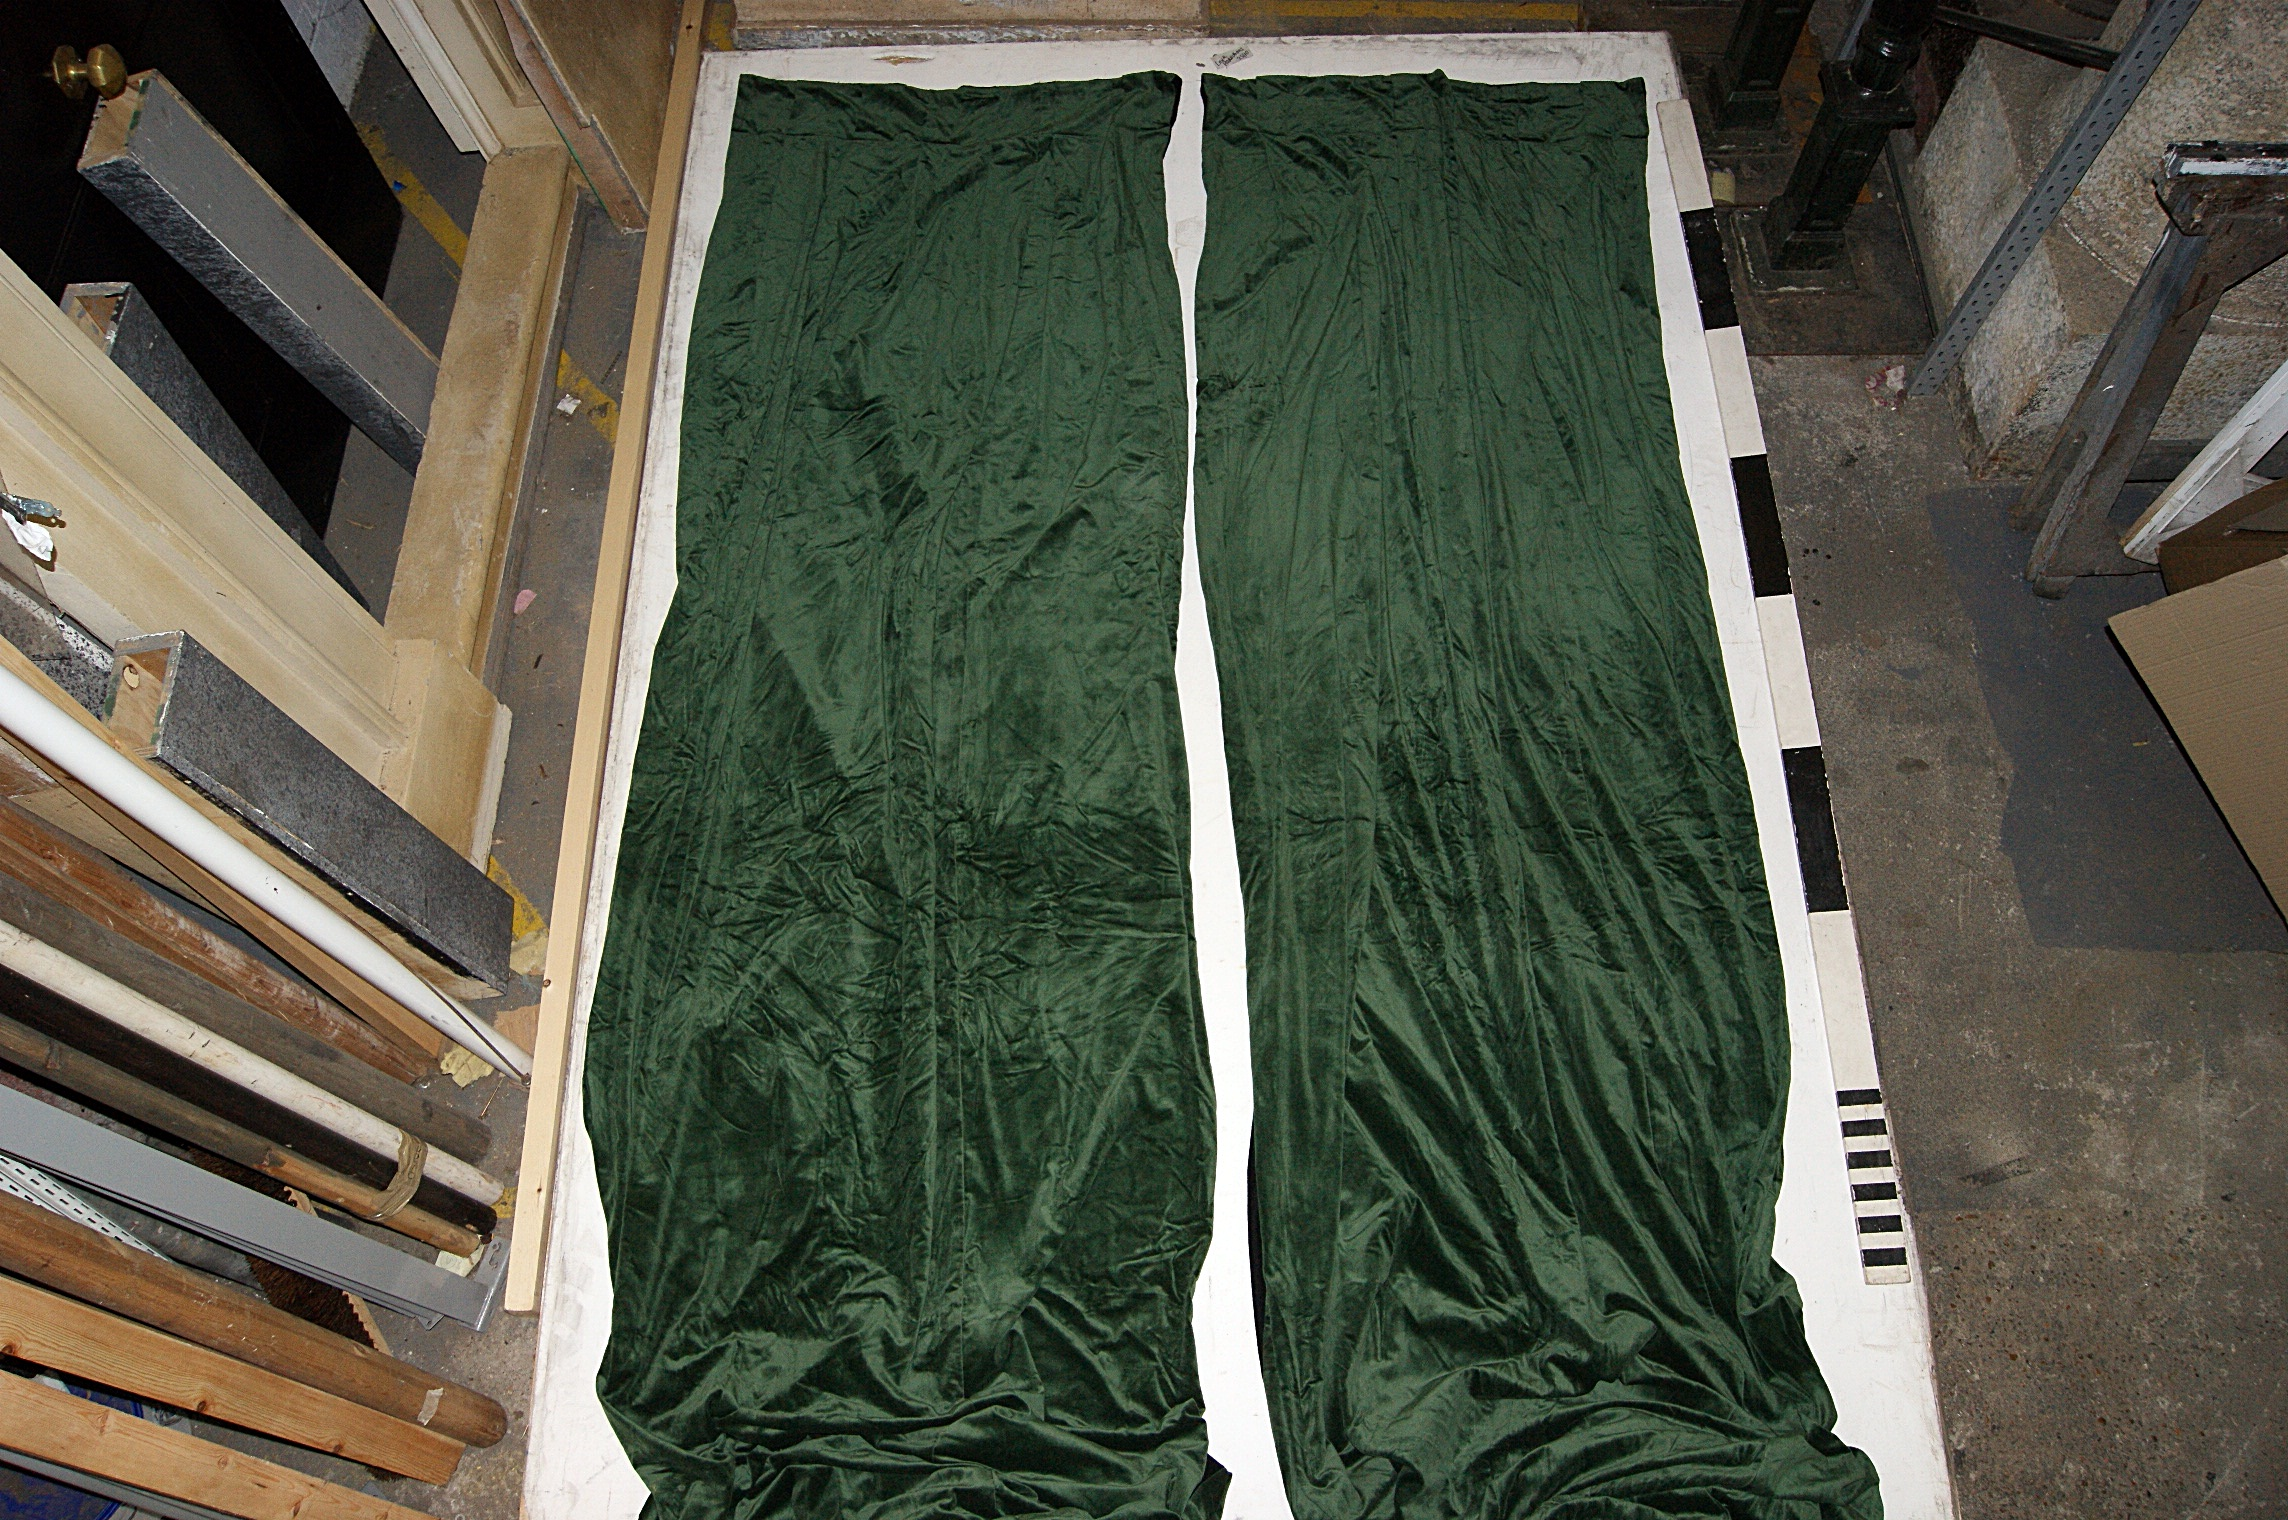 0040124 Green Velvet Drapes H 380cm X 100 Each X 2 Pairs Stockyard Prop And Backdrop Hire